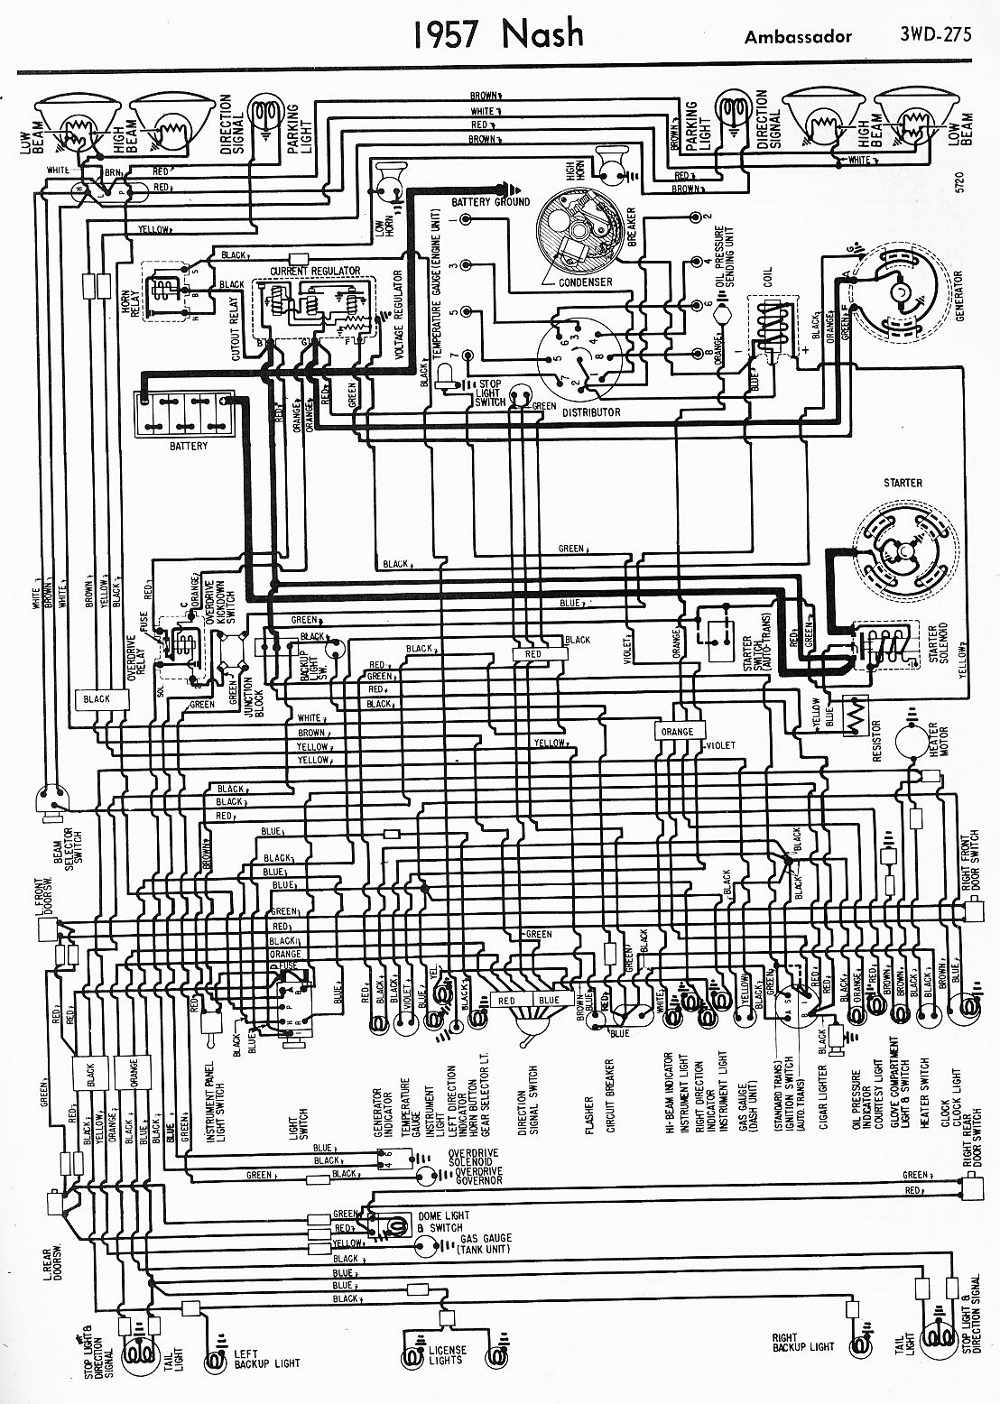 1948 Packard Wiring Diagram Will Be A Thing Images Gallery